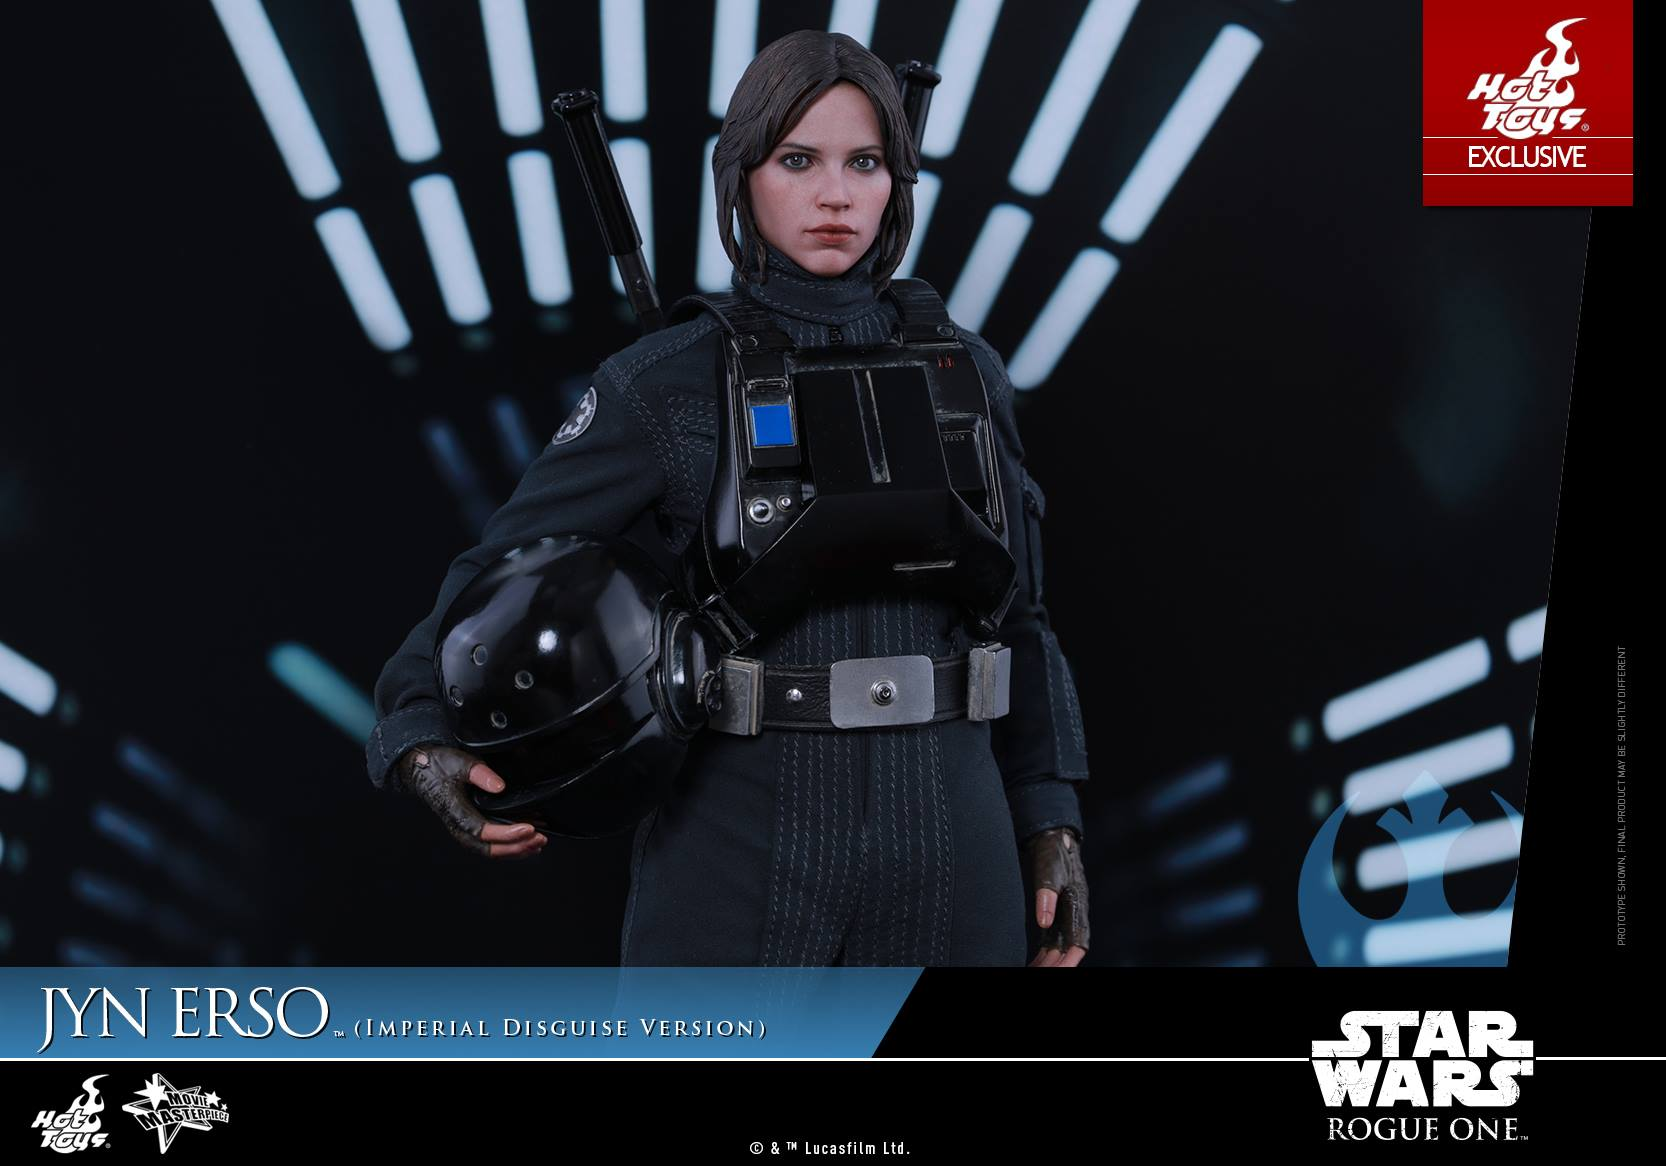 Hot Toys Star Wars Rogue One – Jyn Erso Imperial Disguise Version